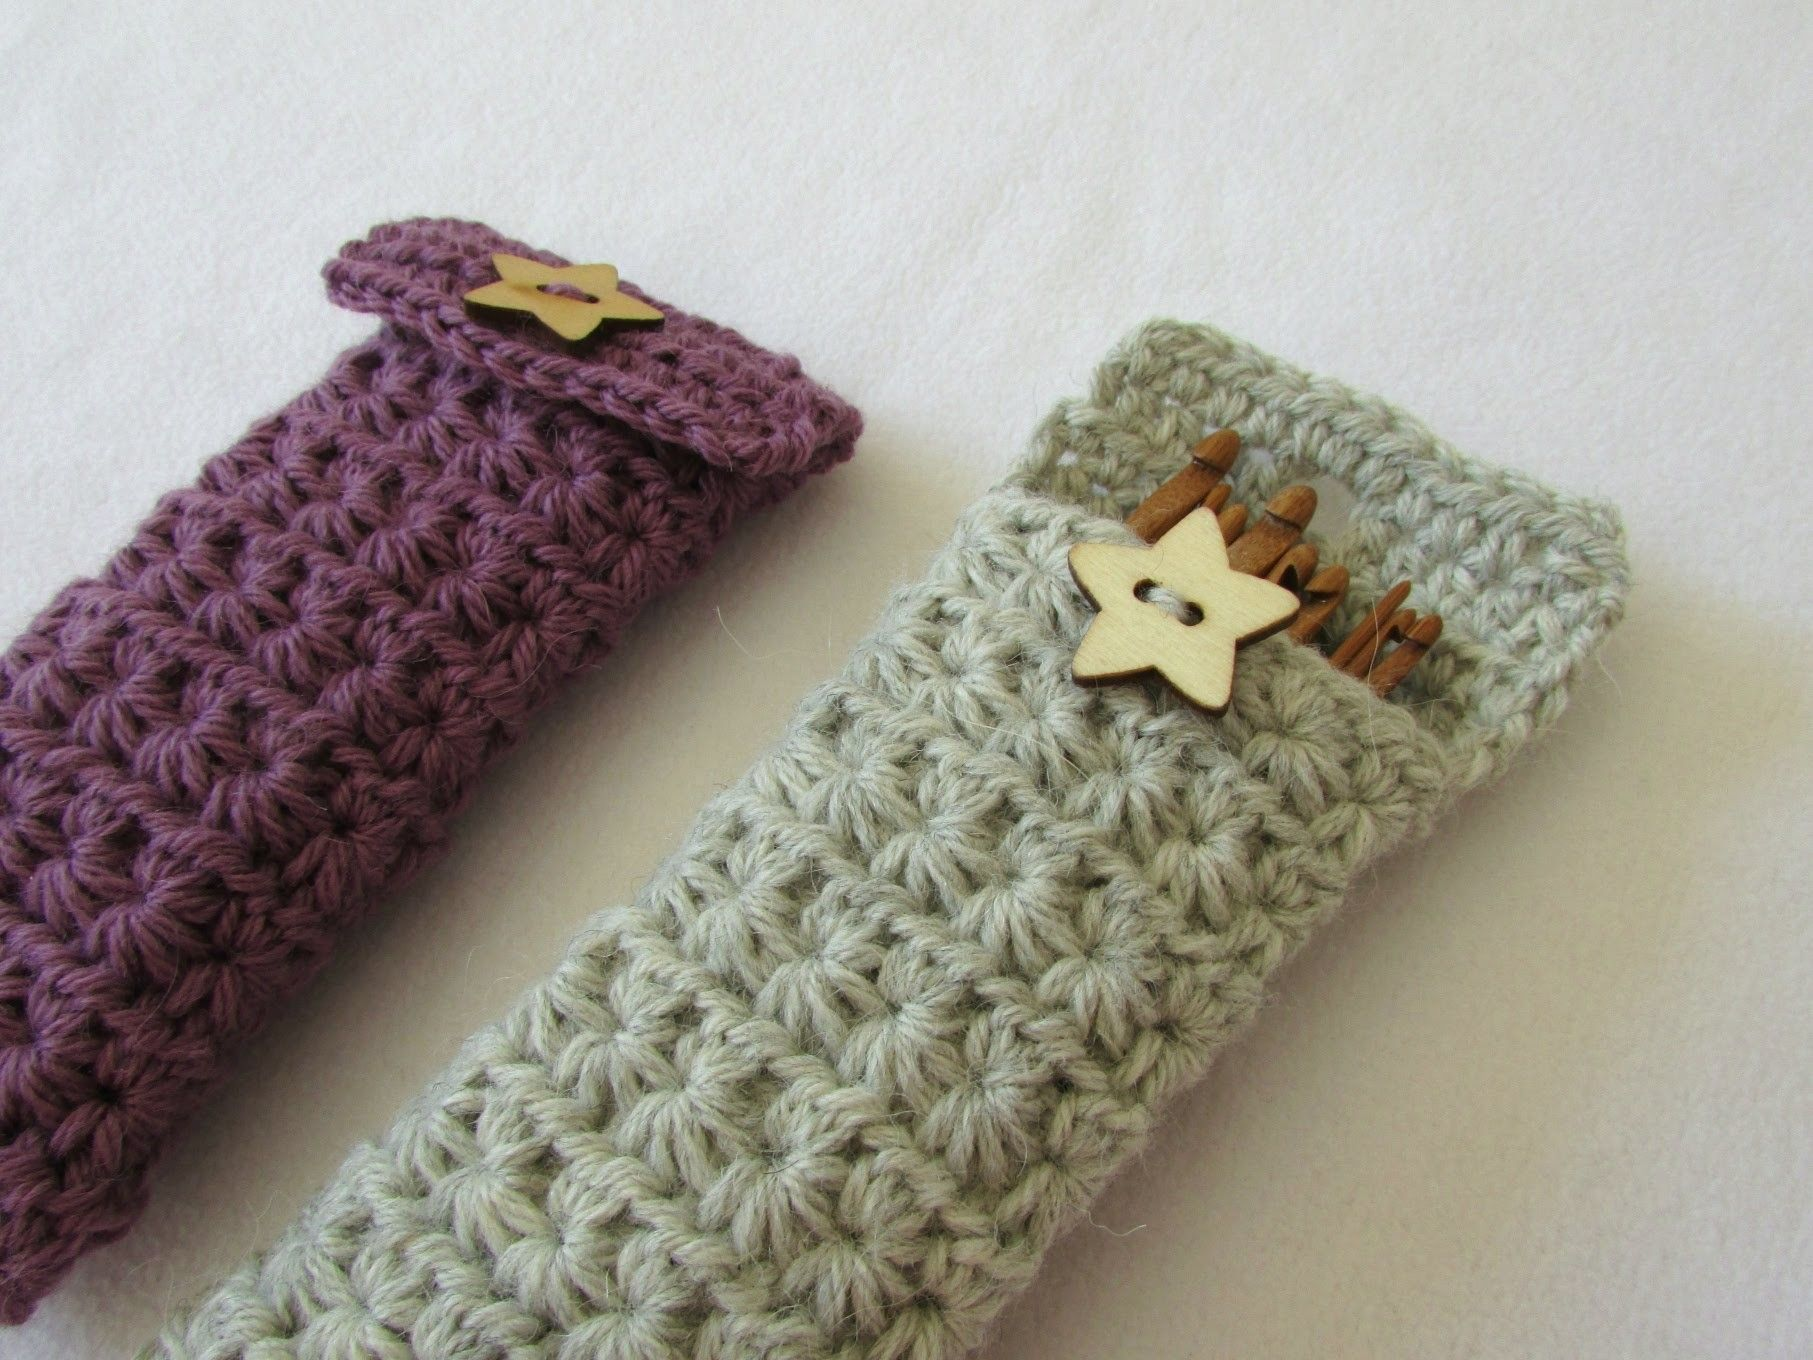 How to crochet a star stitch crochet hook case. holder #crochethooks